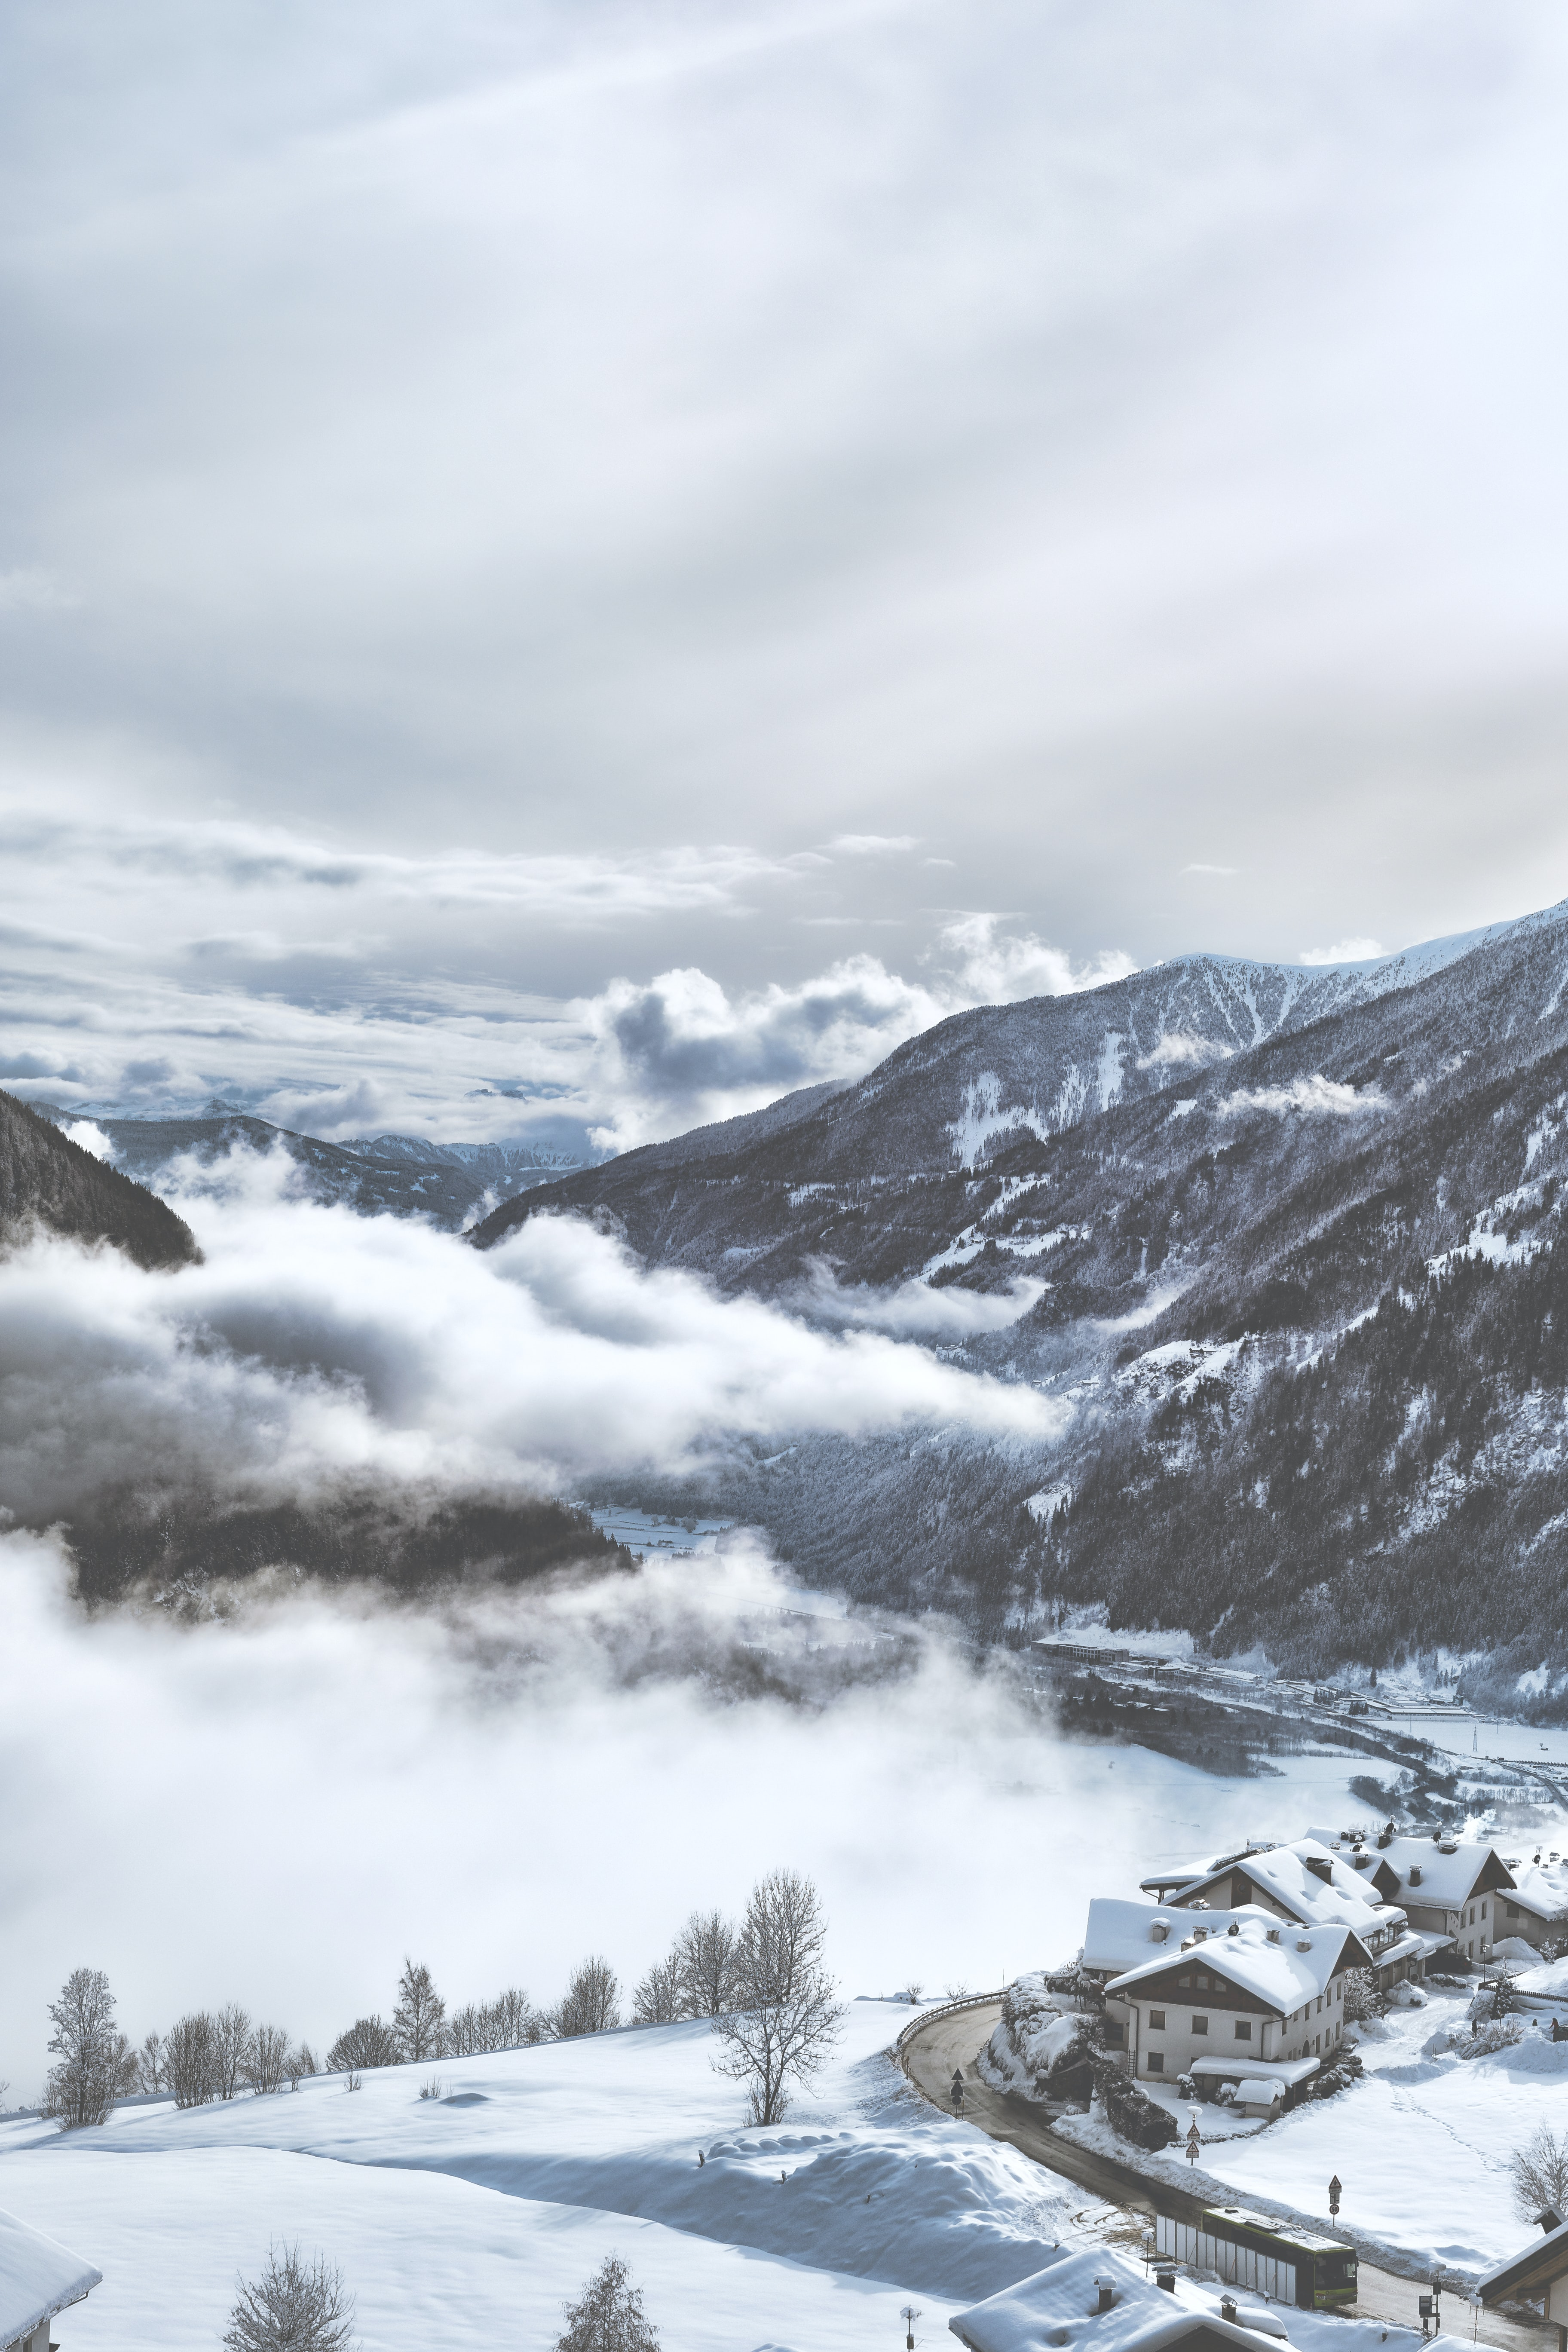 snow-covered village near mountains under white clouds during daytime